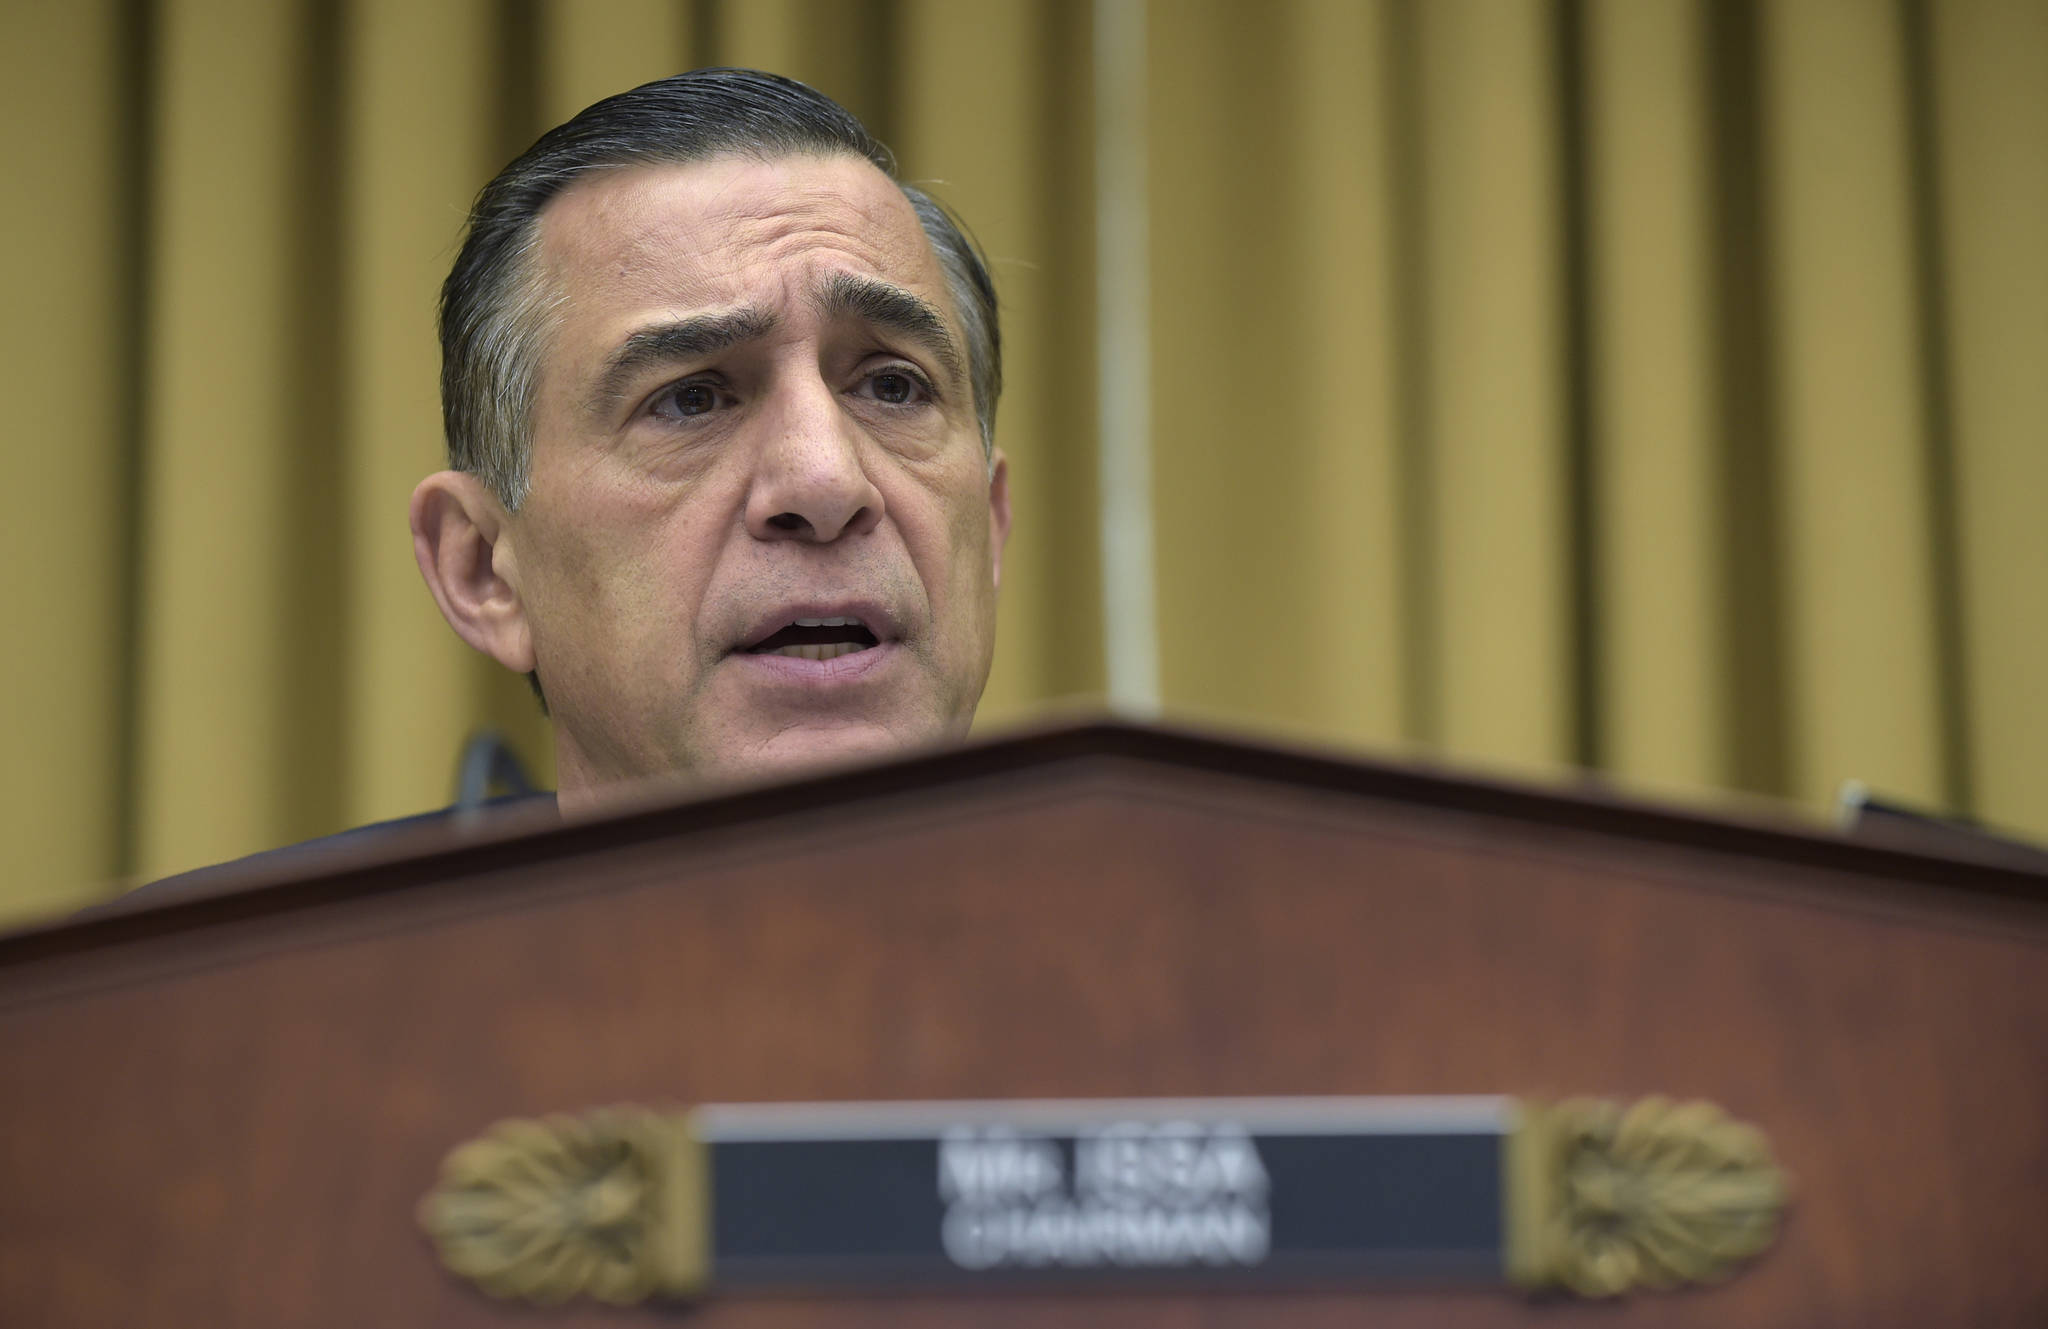 Rep. Darrell Issa, R-California, the chairman of the House Judiciary subcommittee on Courts, Intellectual Property, and the Internet speaks during a hearing on Capitol Hill Thursday on the restructuring the U.S. Court of Appeals for the Ninth Circuit.. (Susan Walsh | The Associated Press)